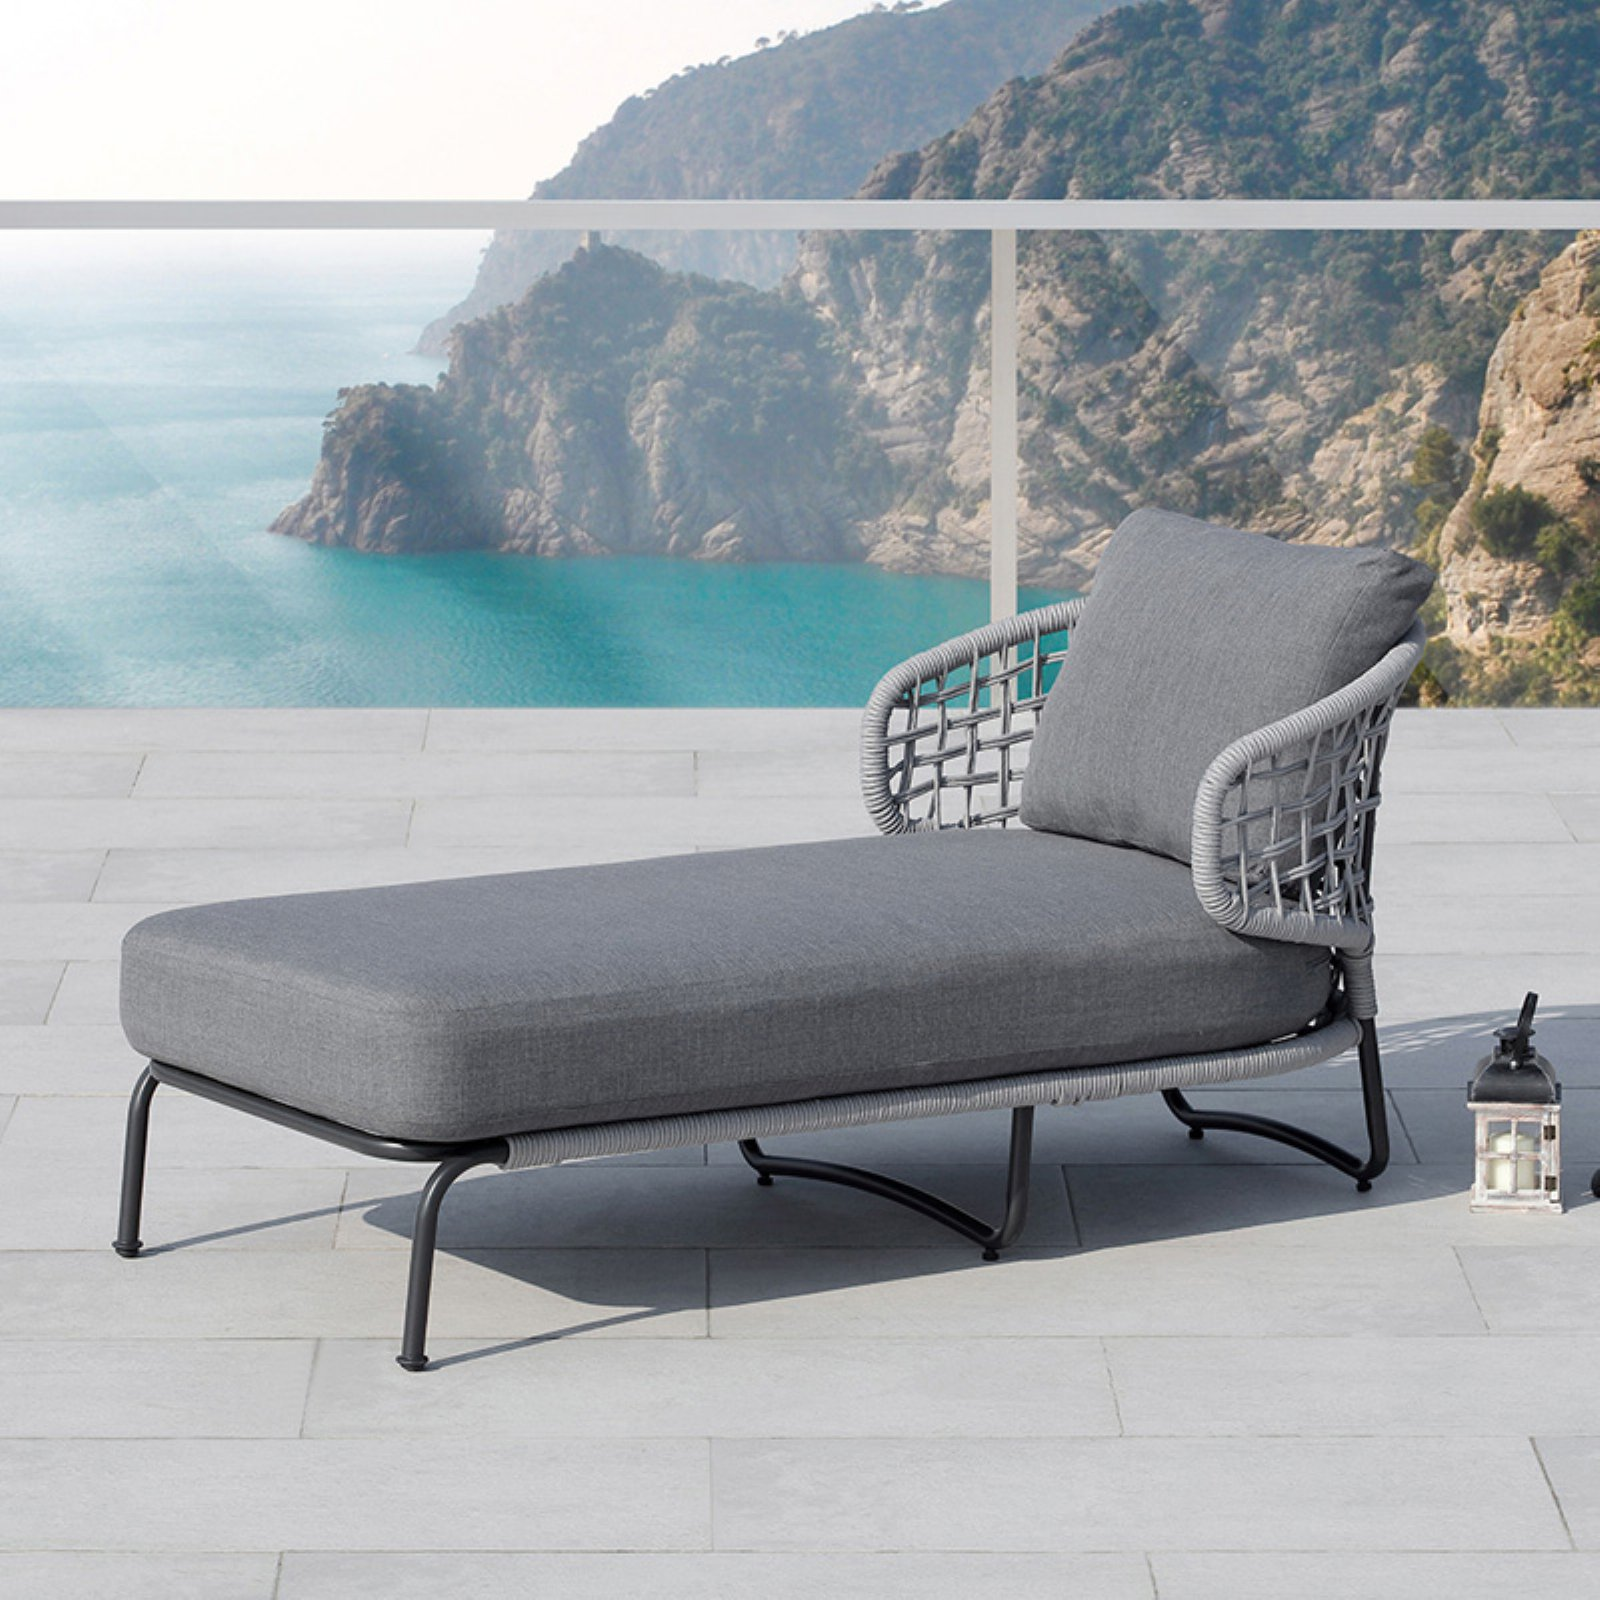 Ove Decors Indiana Gray Outdoor Chaise Lounge Chair   Walmart.com